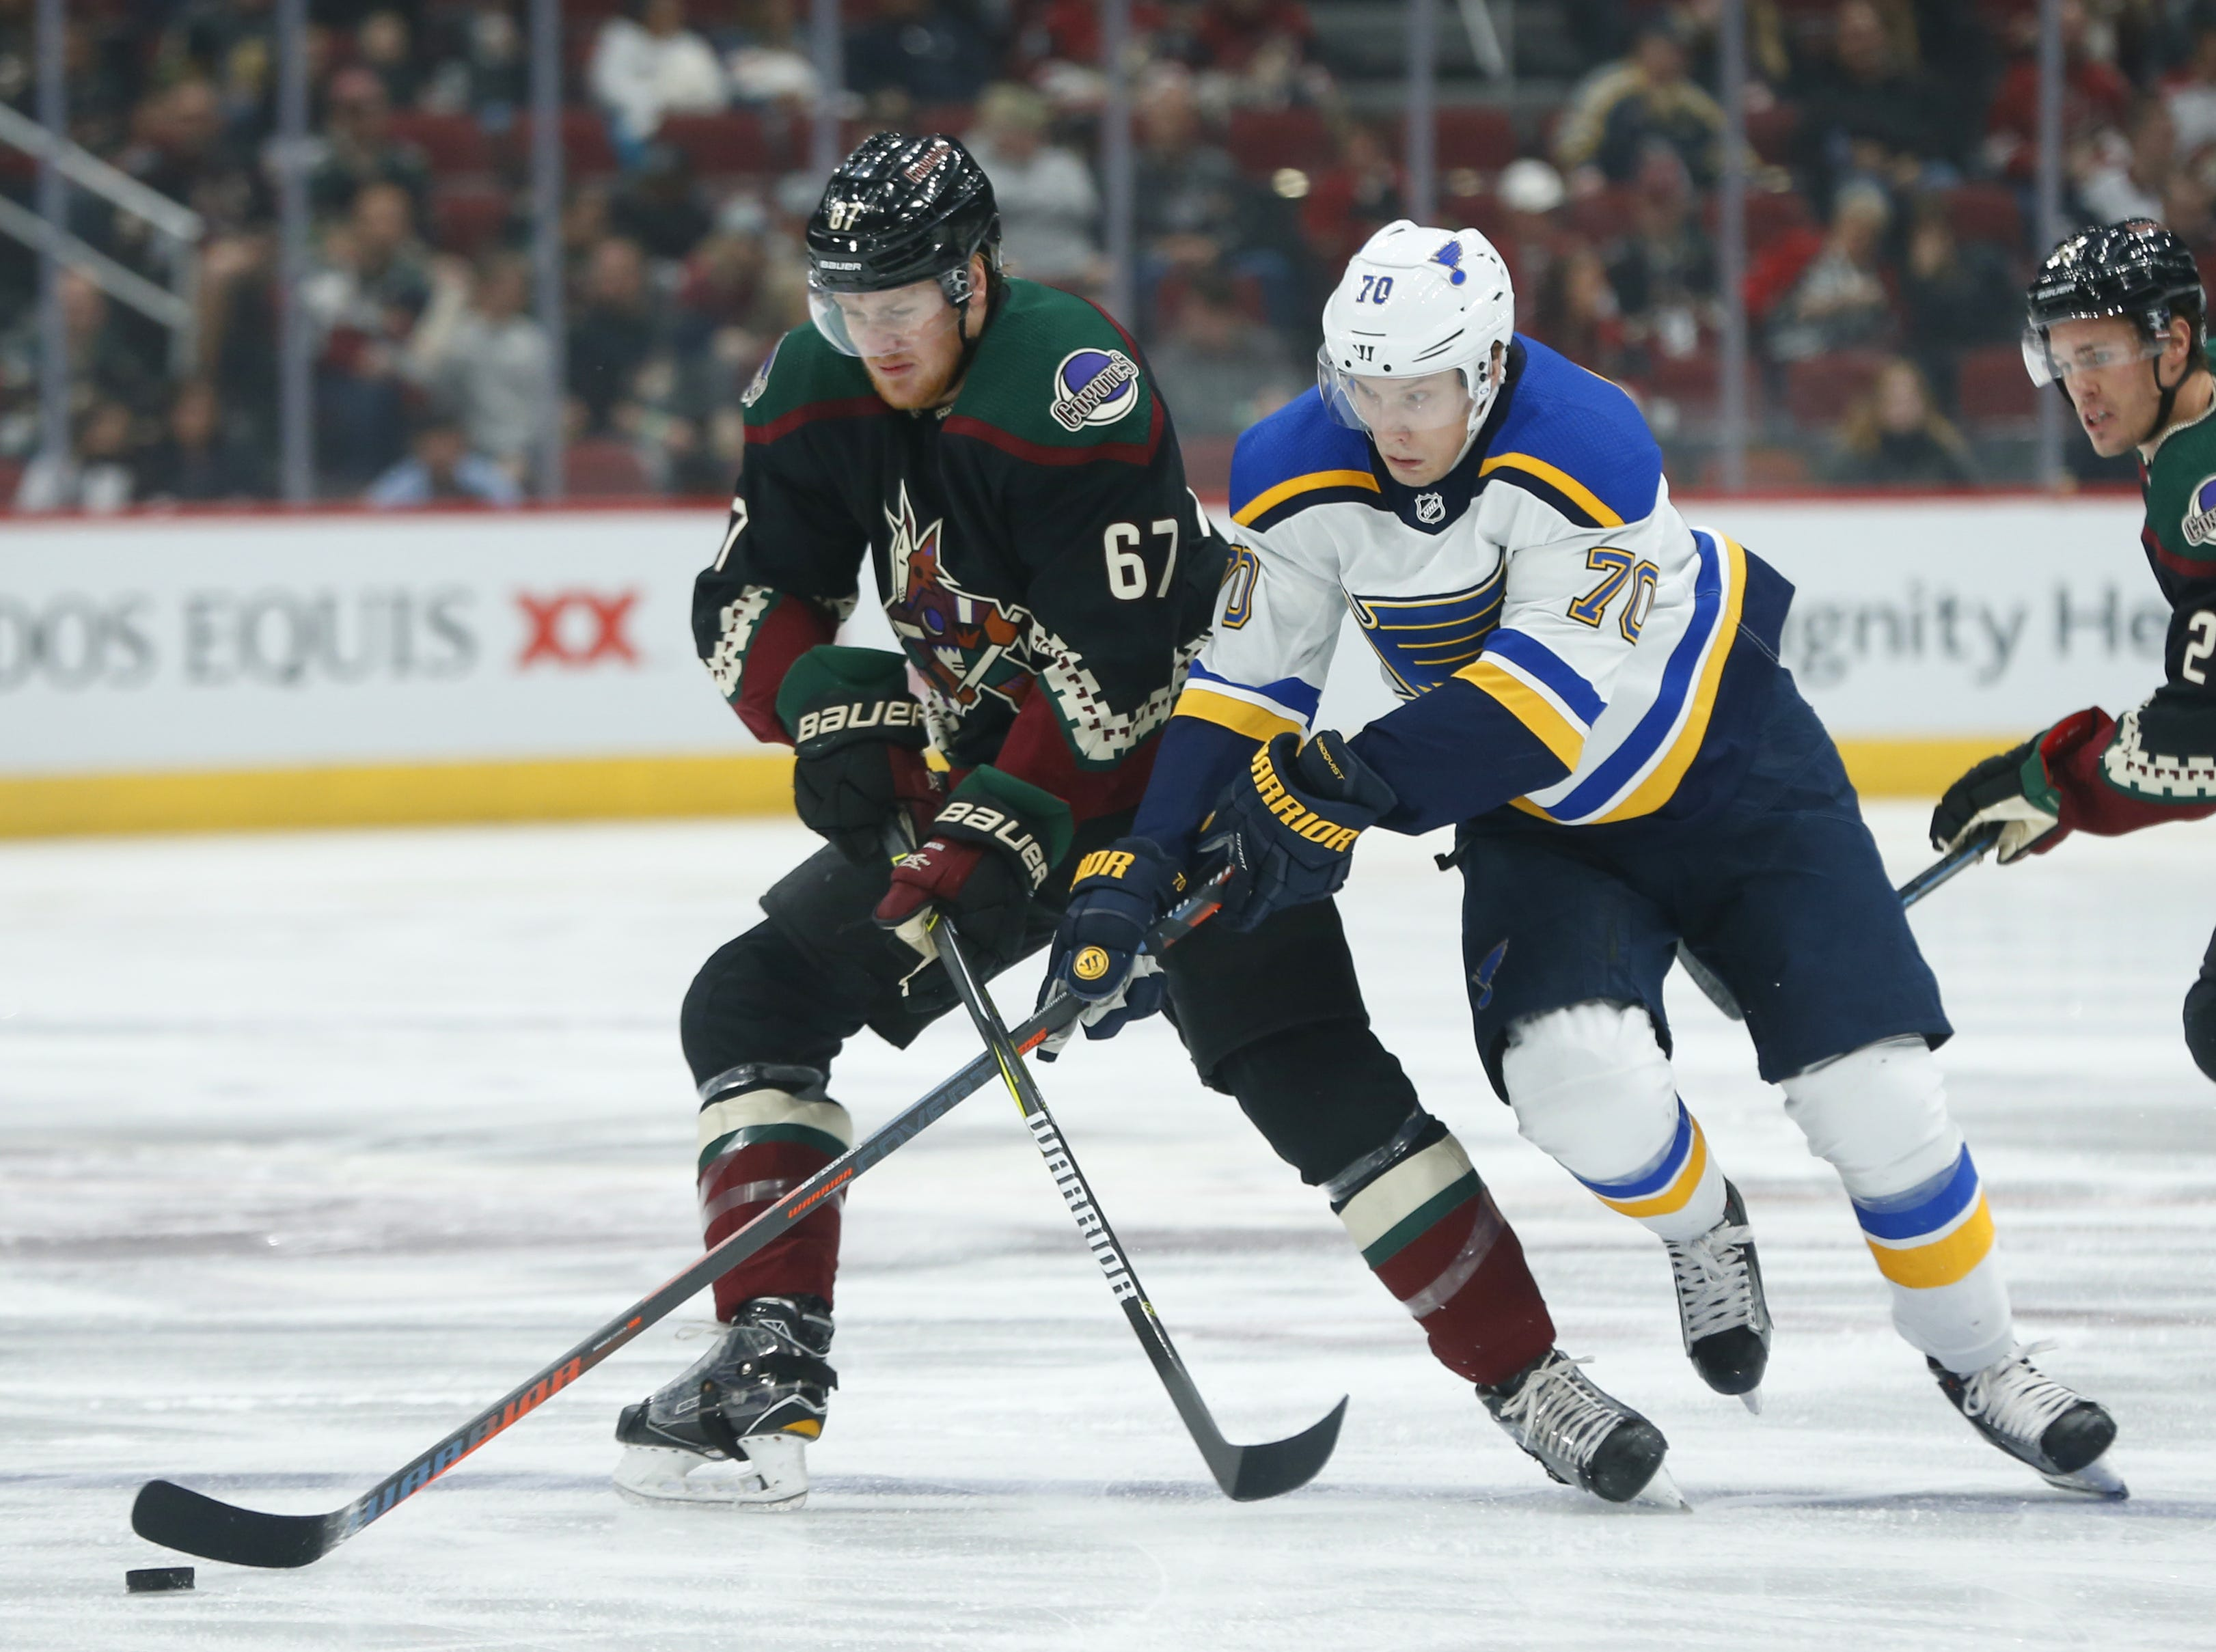 Coyotes' Lawson Crouse (67) and Blues' Oskar Sundqvist (70) during the first period at Gila River Arena in Glendale, Ariz. on December 1, 2018.